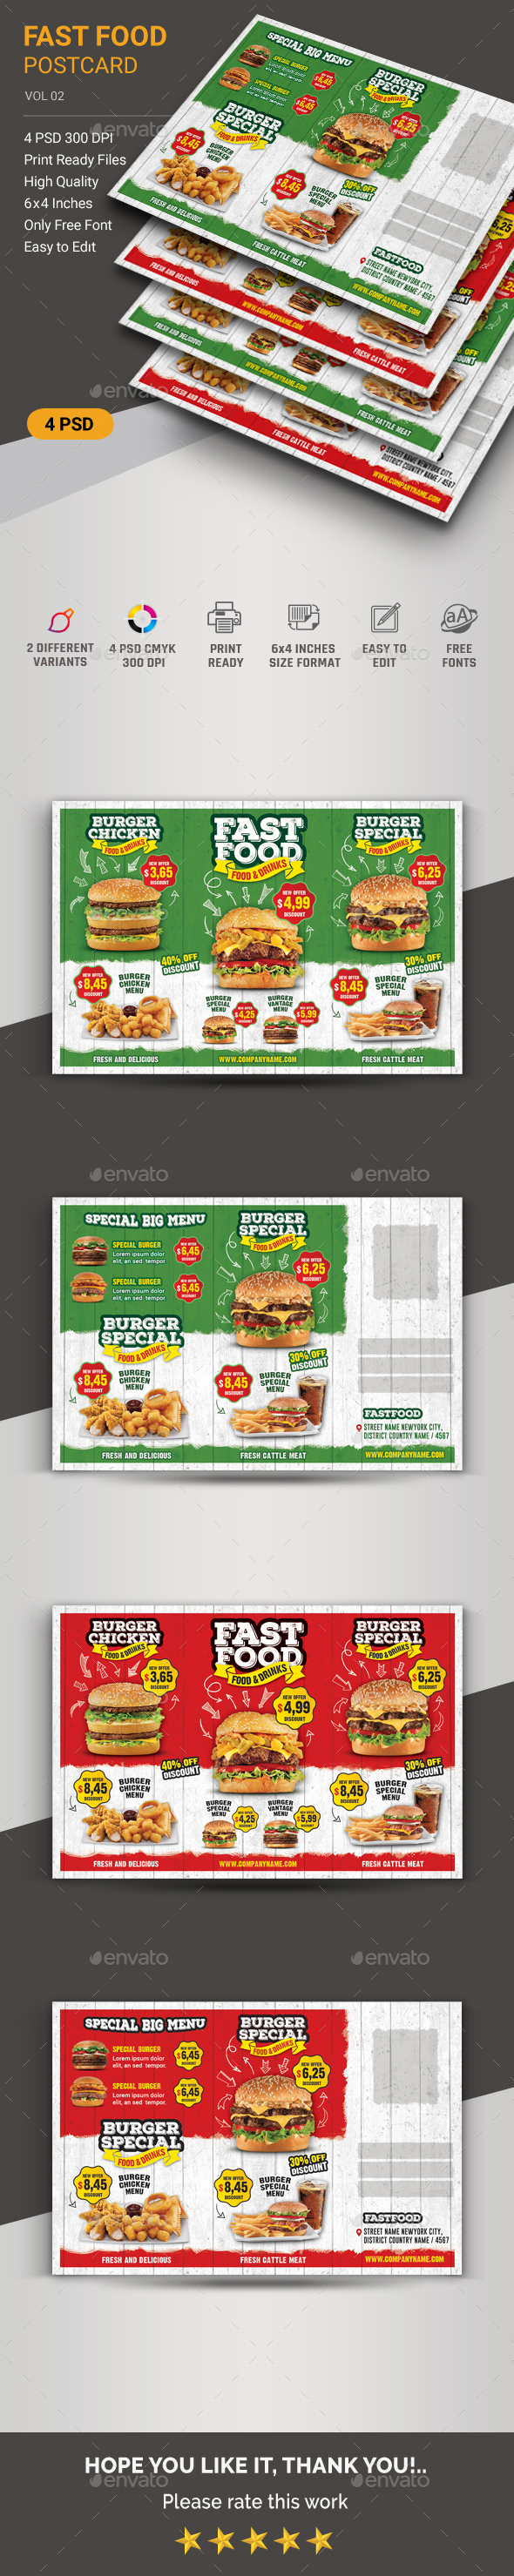 Restaurant Postcard - Cards & Invites Print Templates